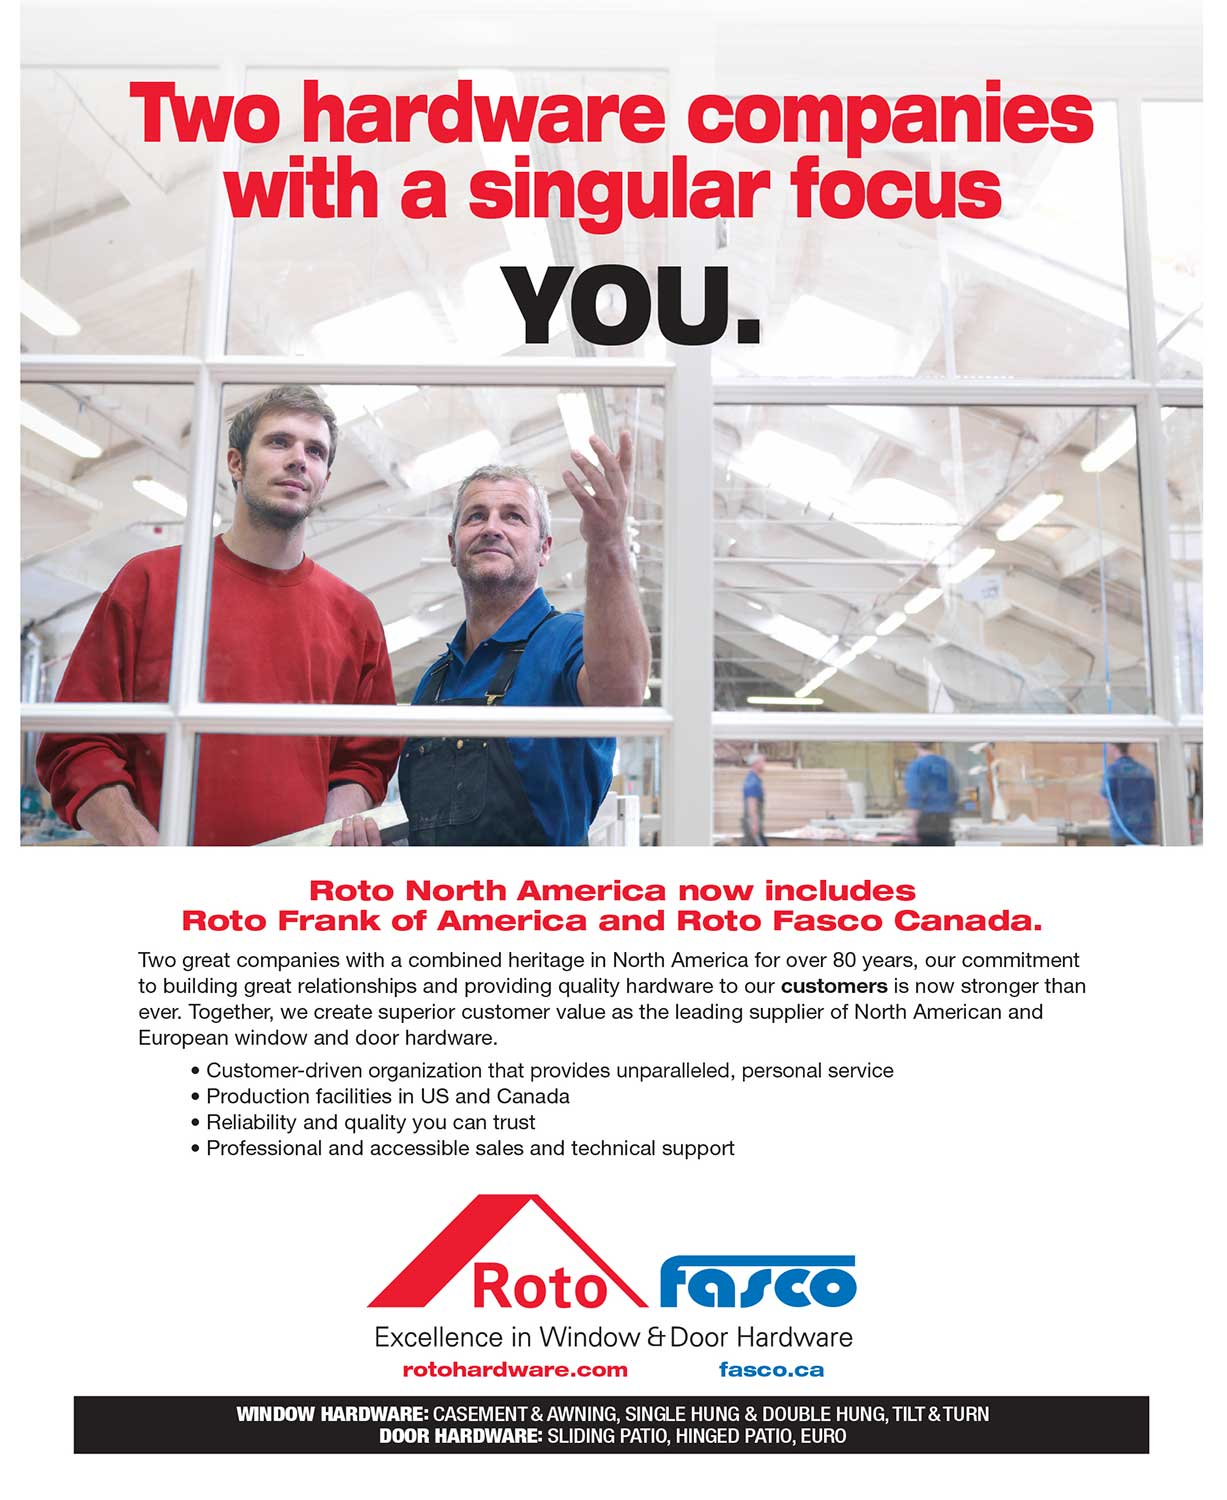 Roto-North-America-Alu-Commerical-Print-Ad